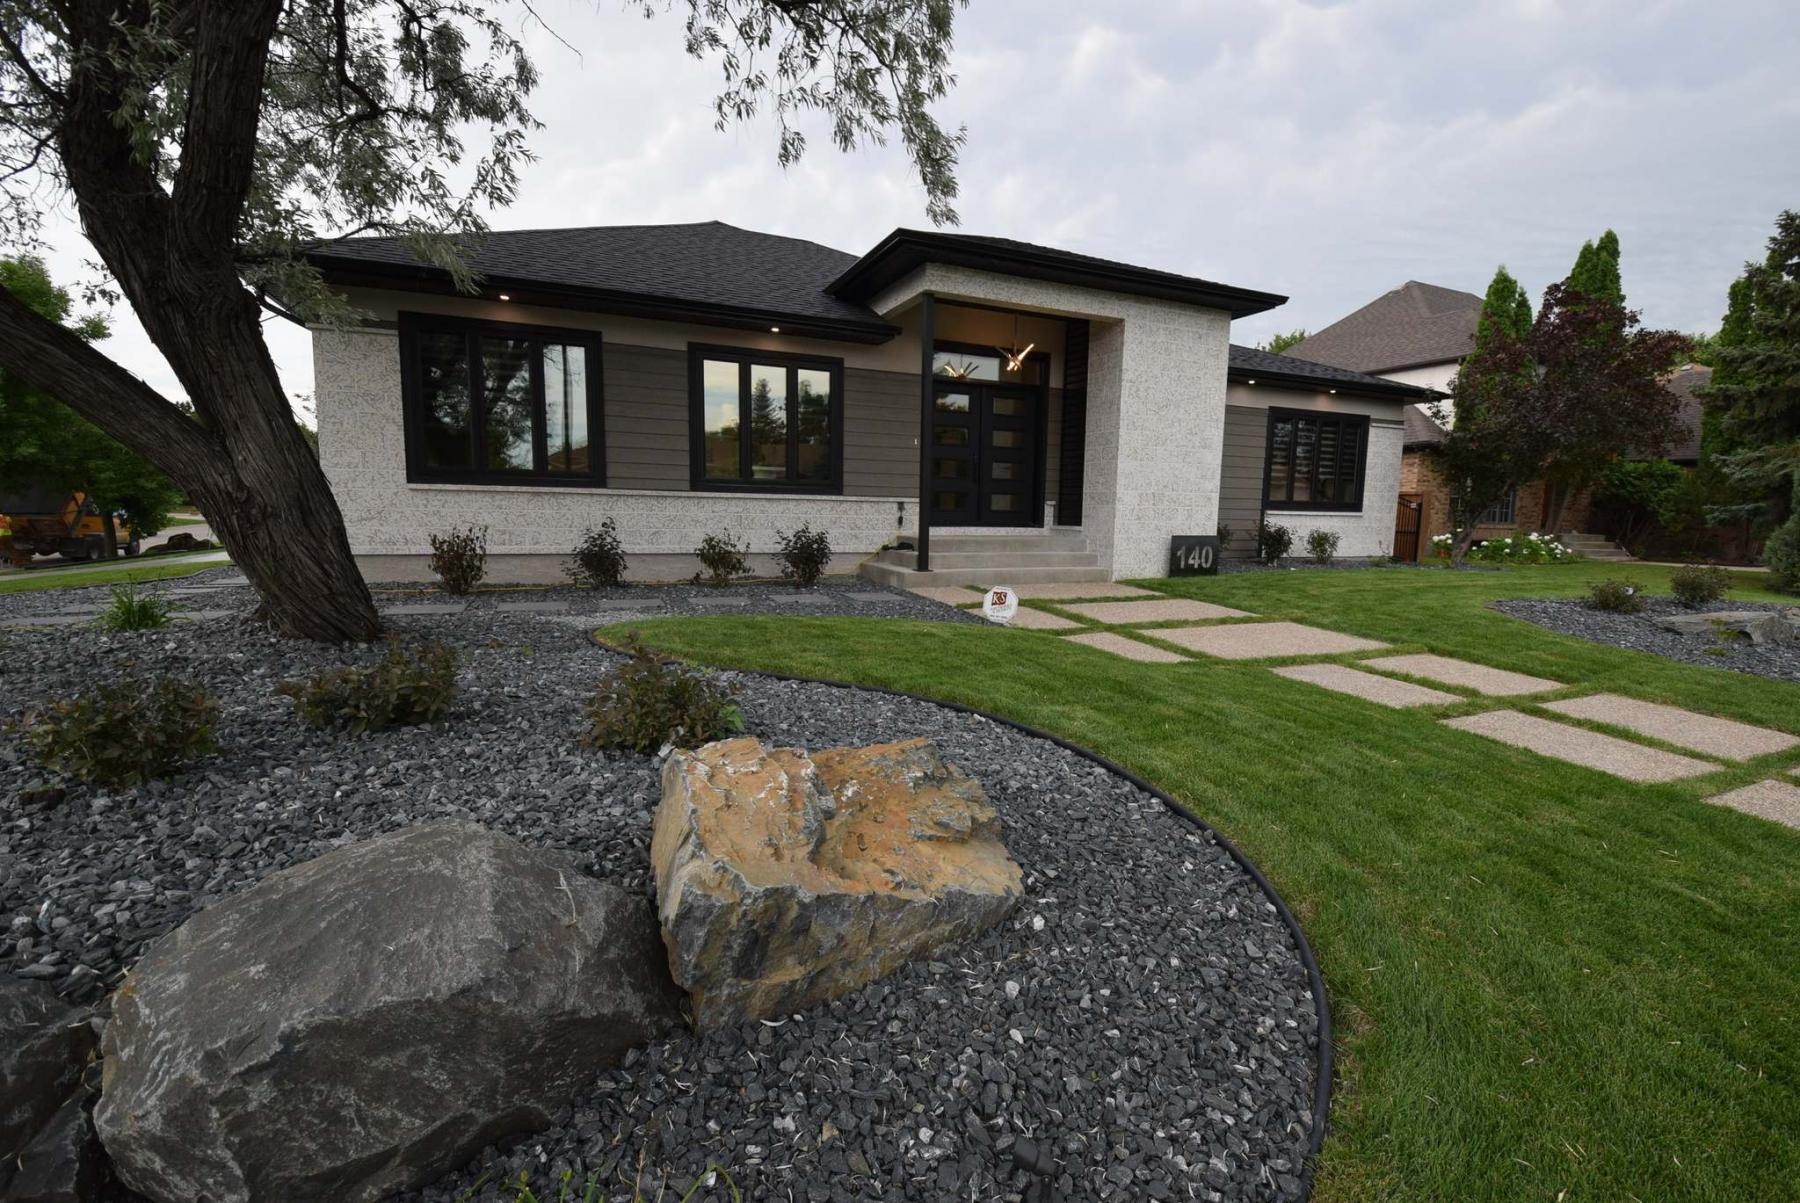 <p>Photos by Todd Lewys / Winnipeg Free Press</p><p>A classic tyndall stone exterior gives this bungalow a timeless curb appeal. </p>